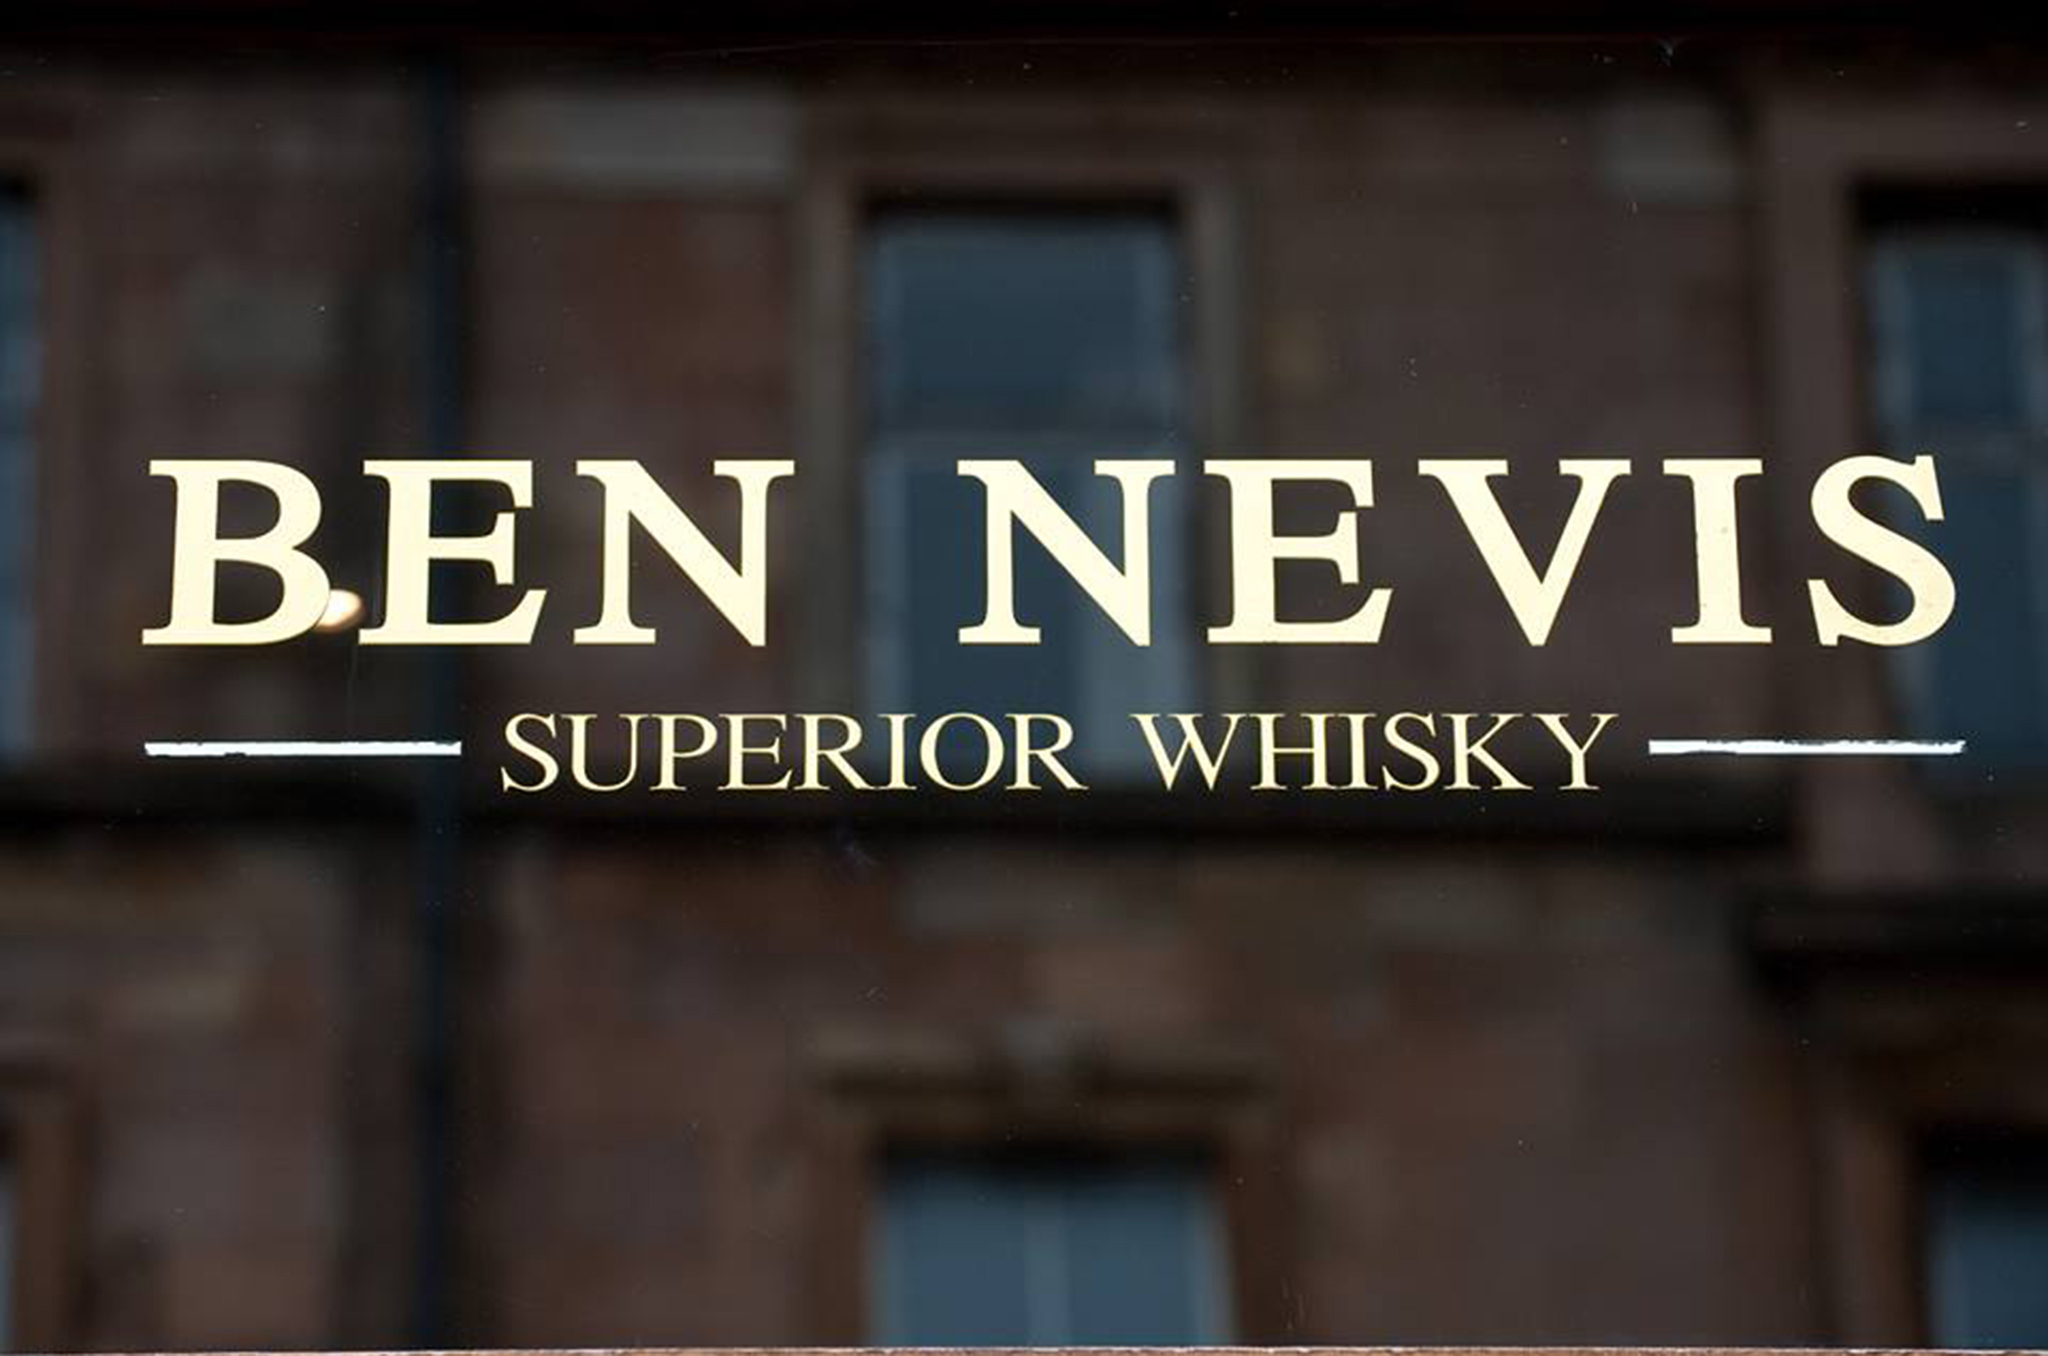 The Ben Nevis, Pubs, Glasgow